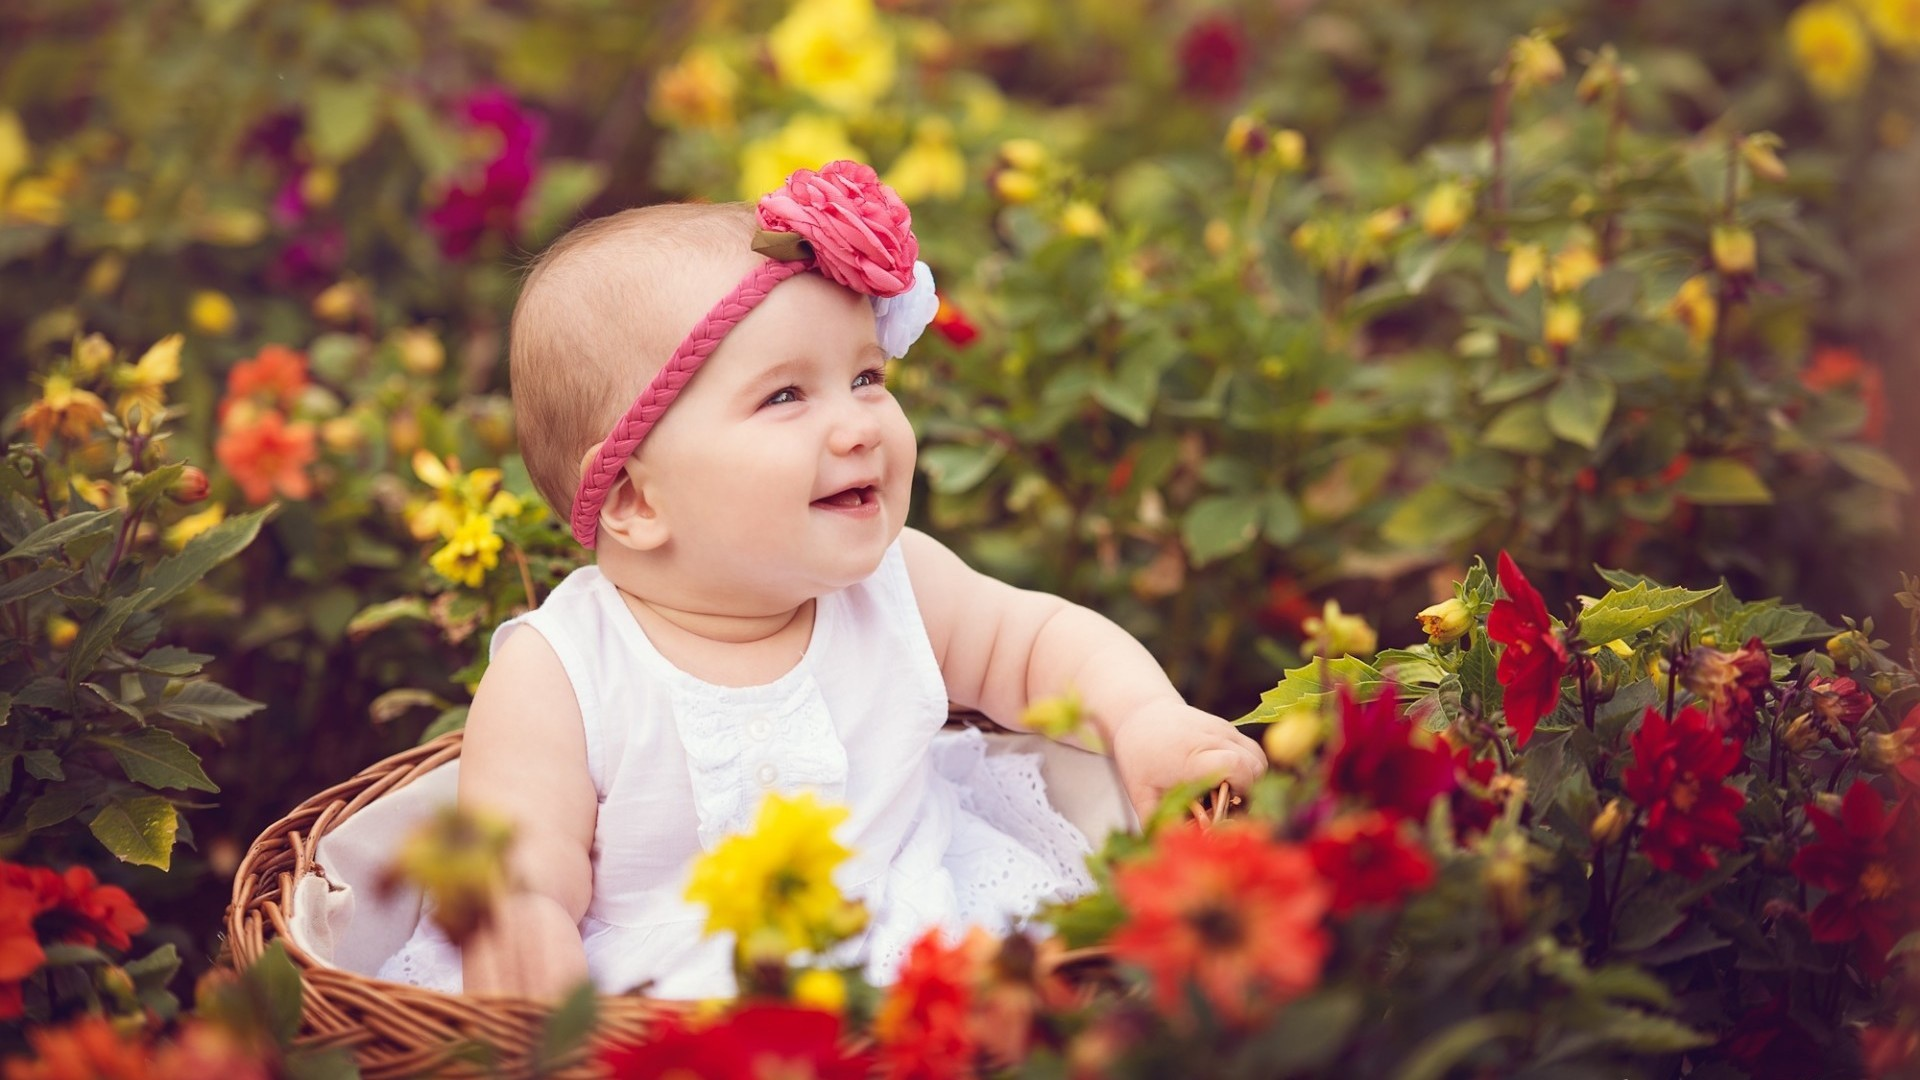 Adorable Baby Photos & Pictures of baby girls and boys | The ...